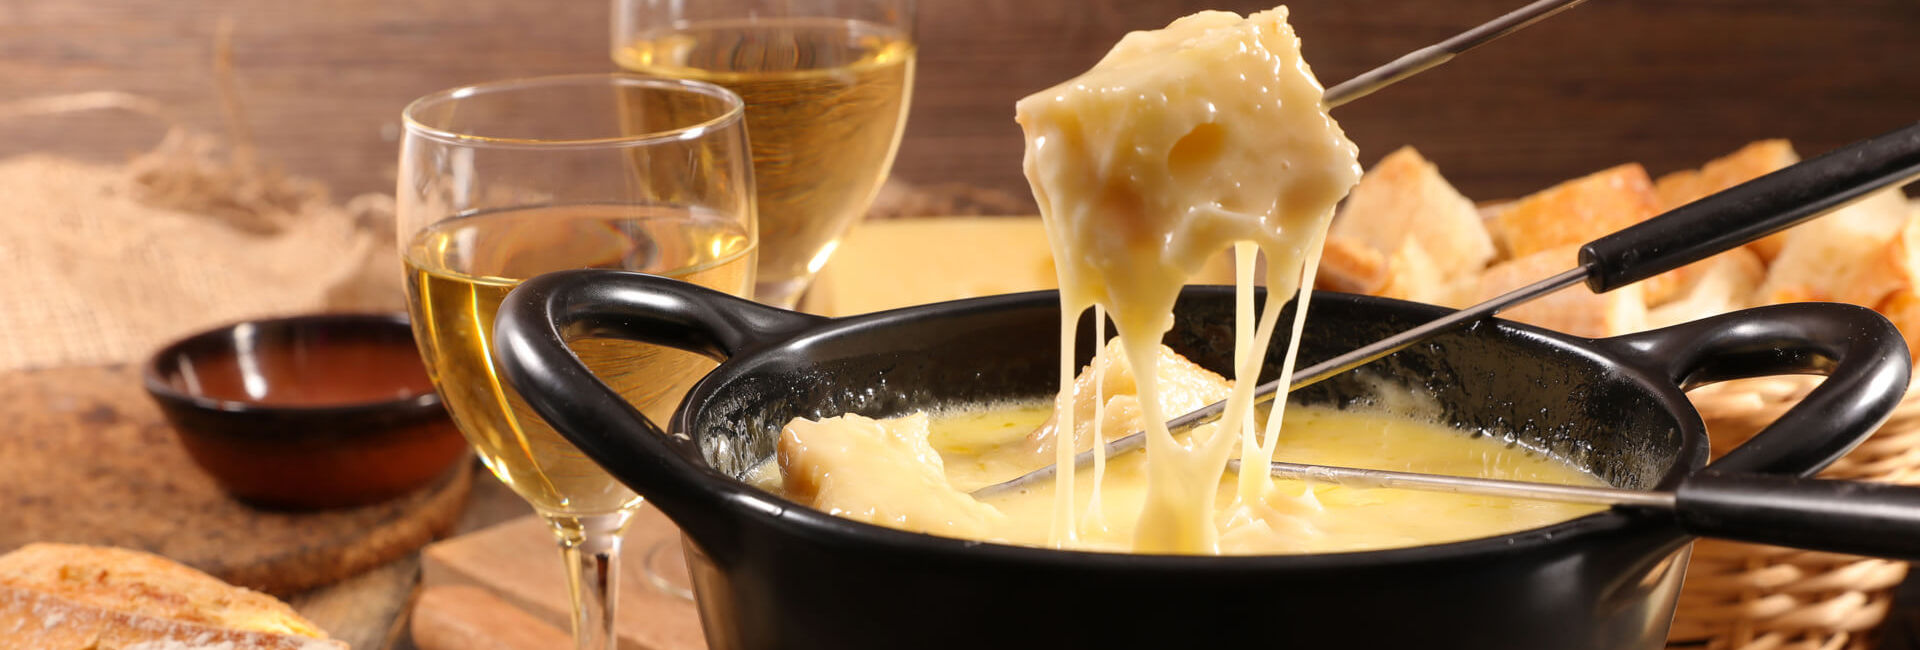 Cheese fondue and two glasses of white wine - Grill Tasting package Gasterij 't Karrewiel